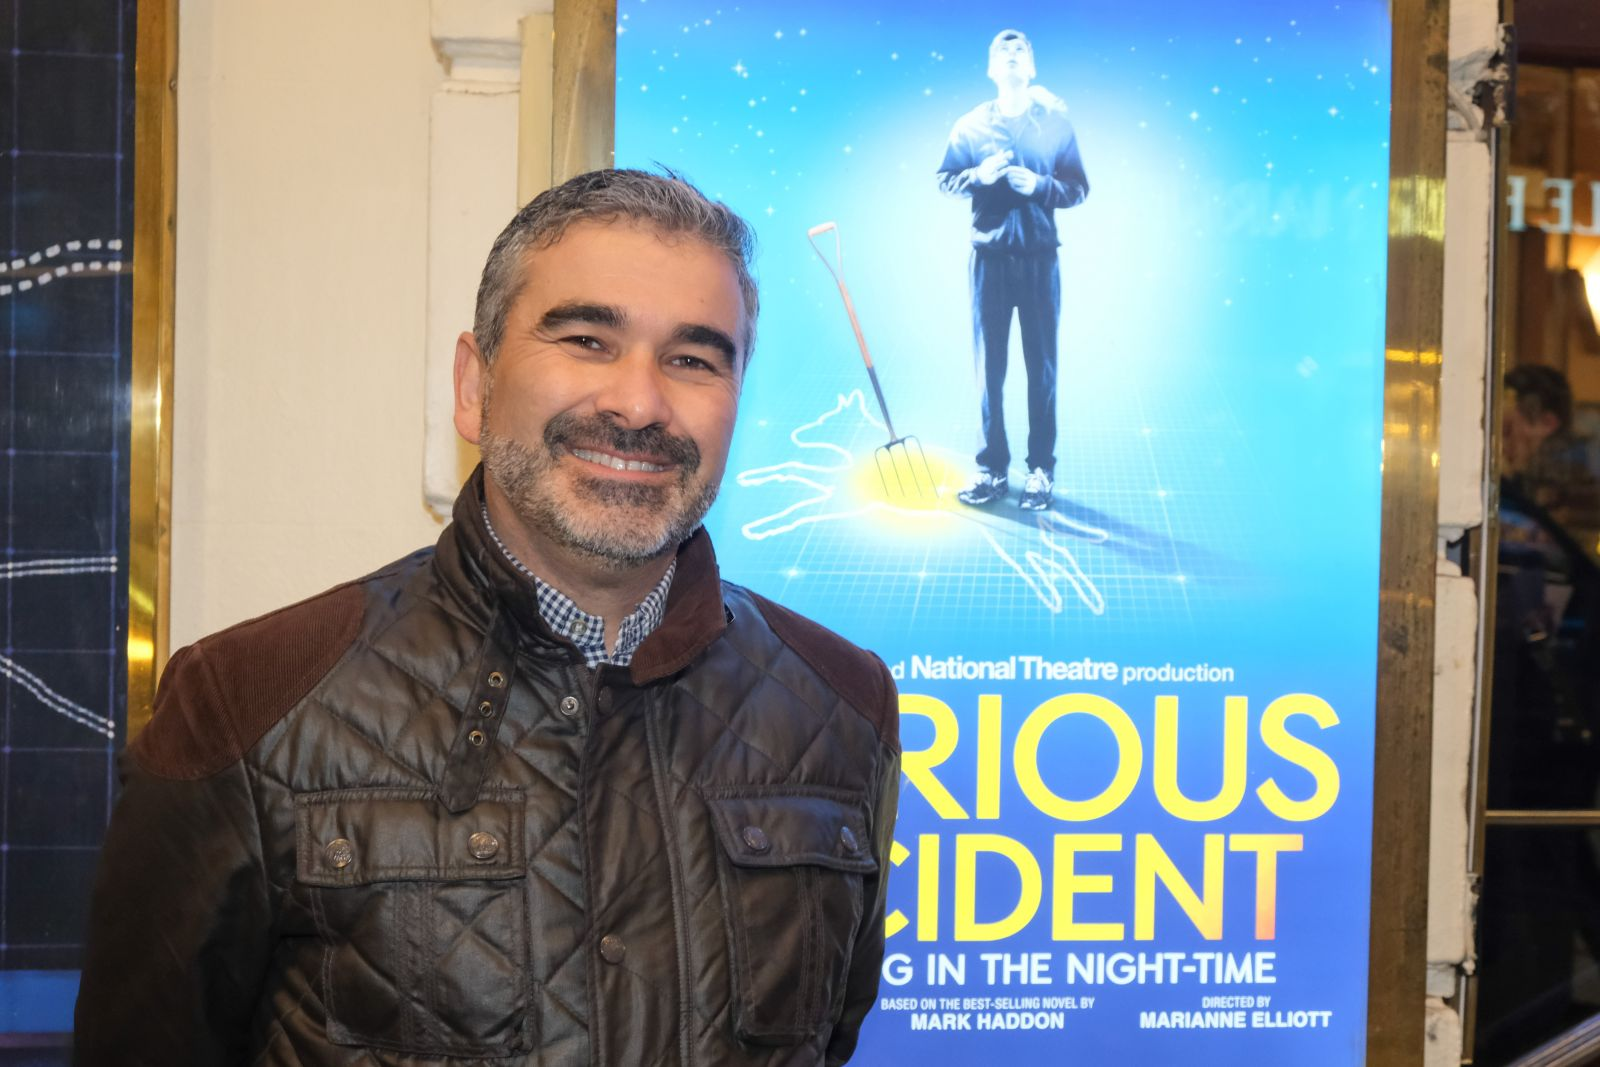 made go out in the night-time for a Curious Incident